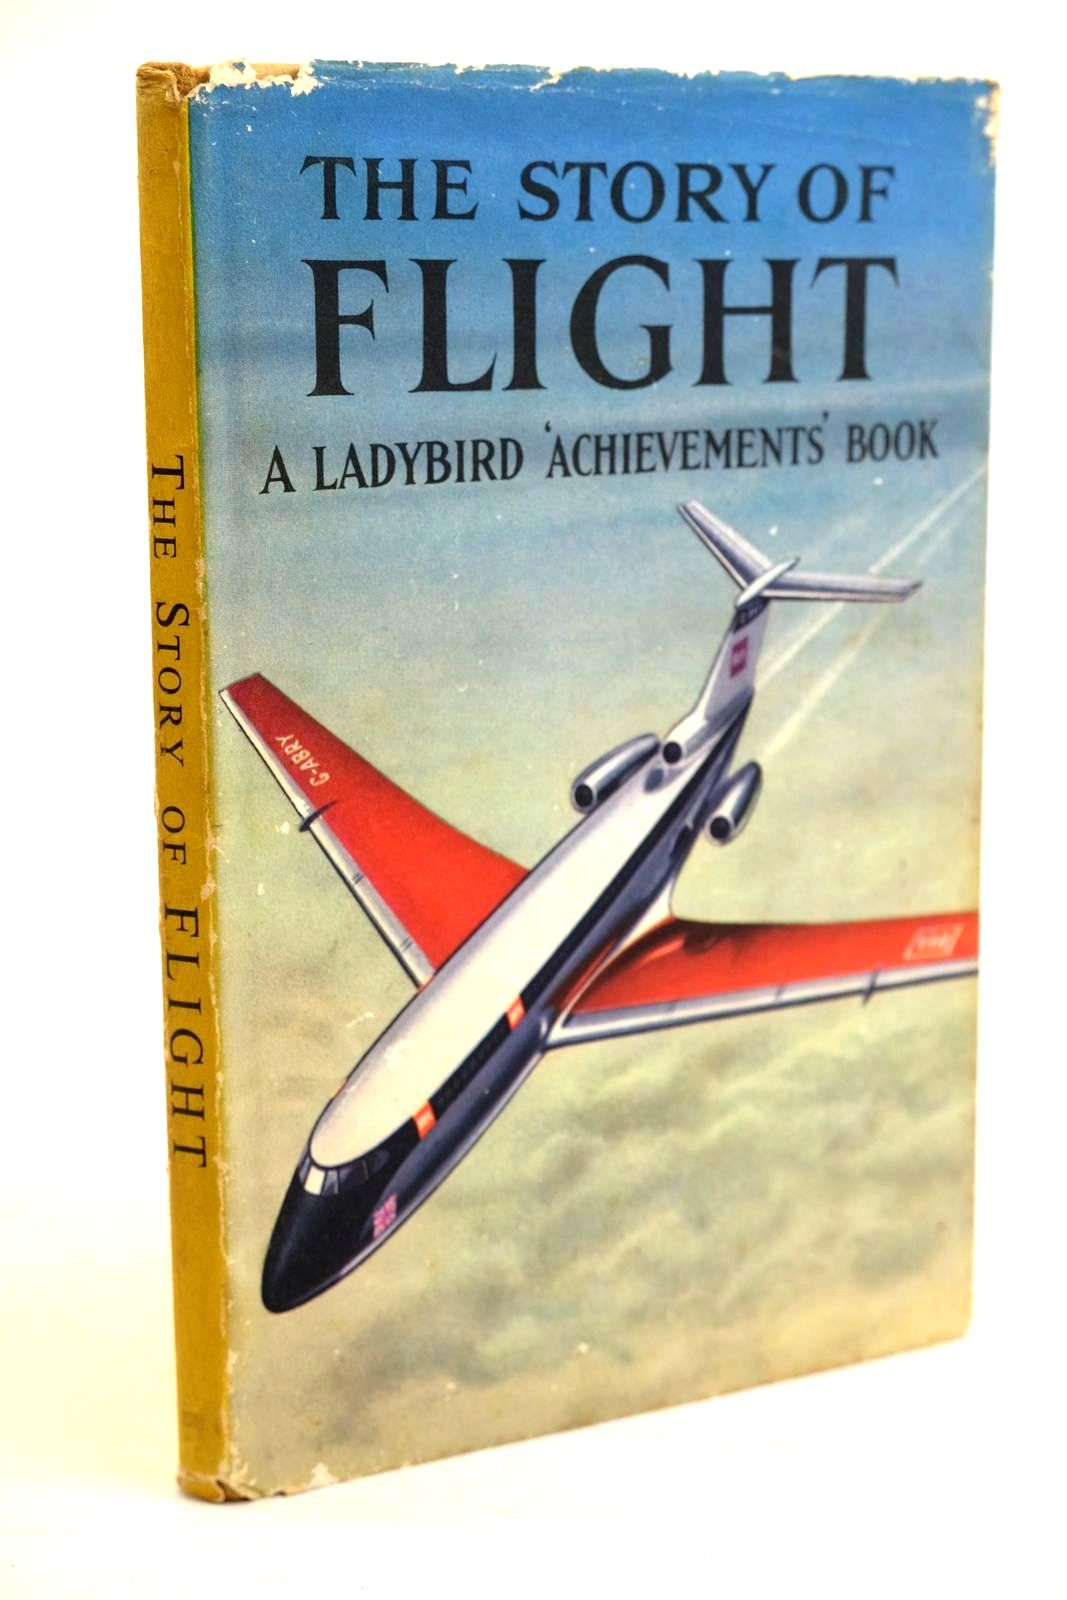 Photo of THE STORY OF FLIGHT written by Bowood, Richard illustrated by Ayton, Robert published by Wills & Hepworth Ltd. (STOCK CODE: 1320644)  for sale by Stella & Rose's Books